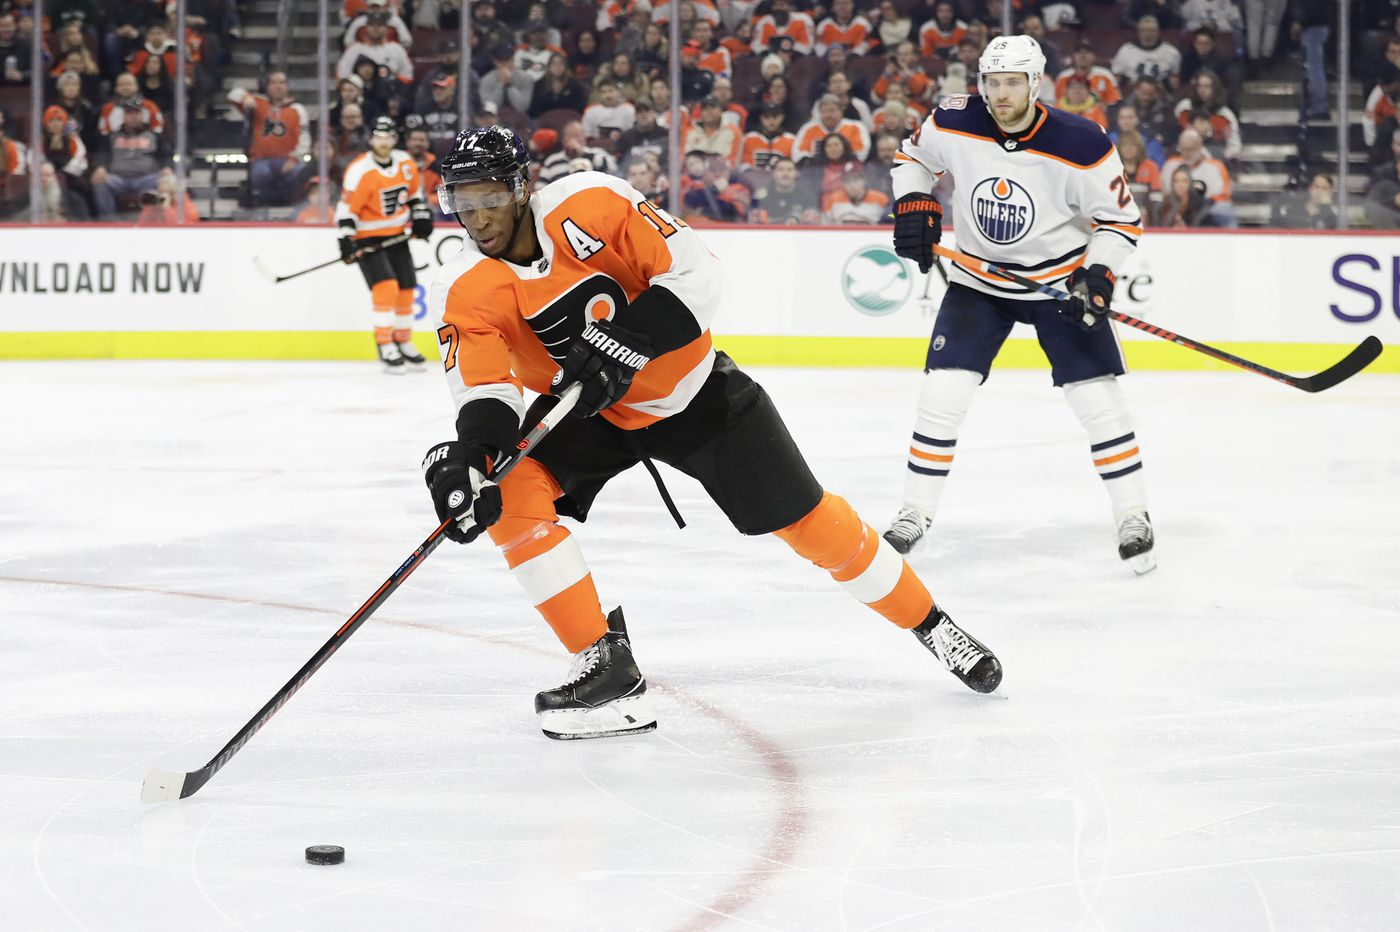 Flyers' power play finally starting to produce